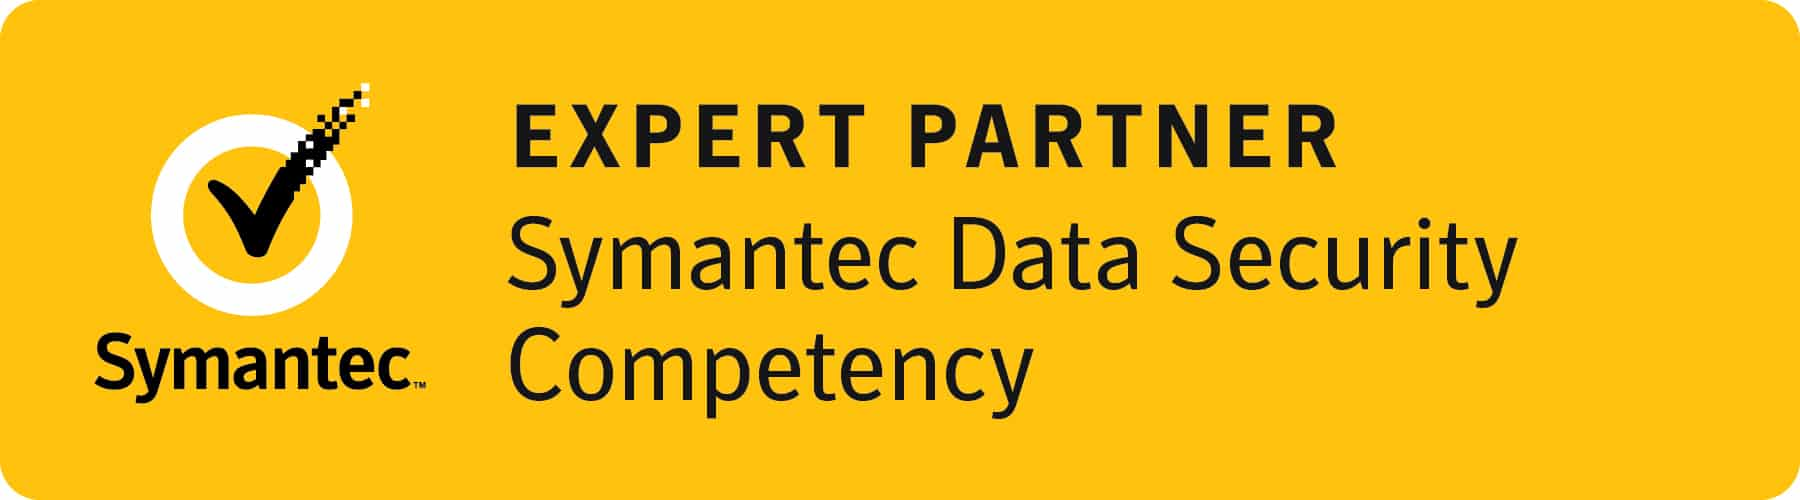 press releases cybersecurity expert partner sym data security competency logo more